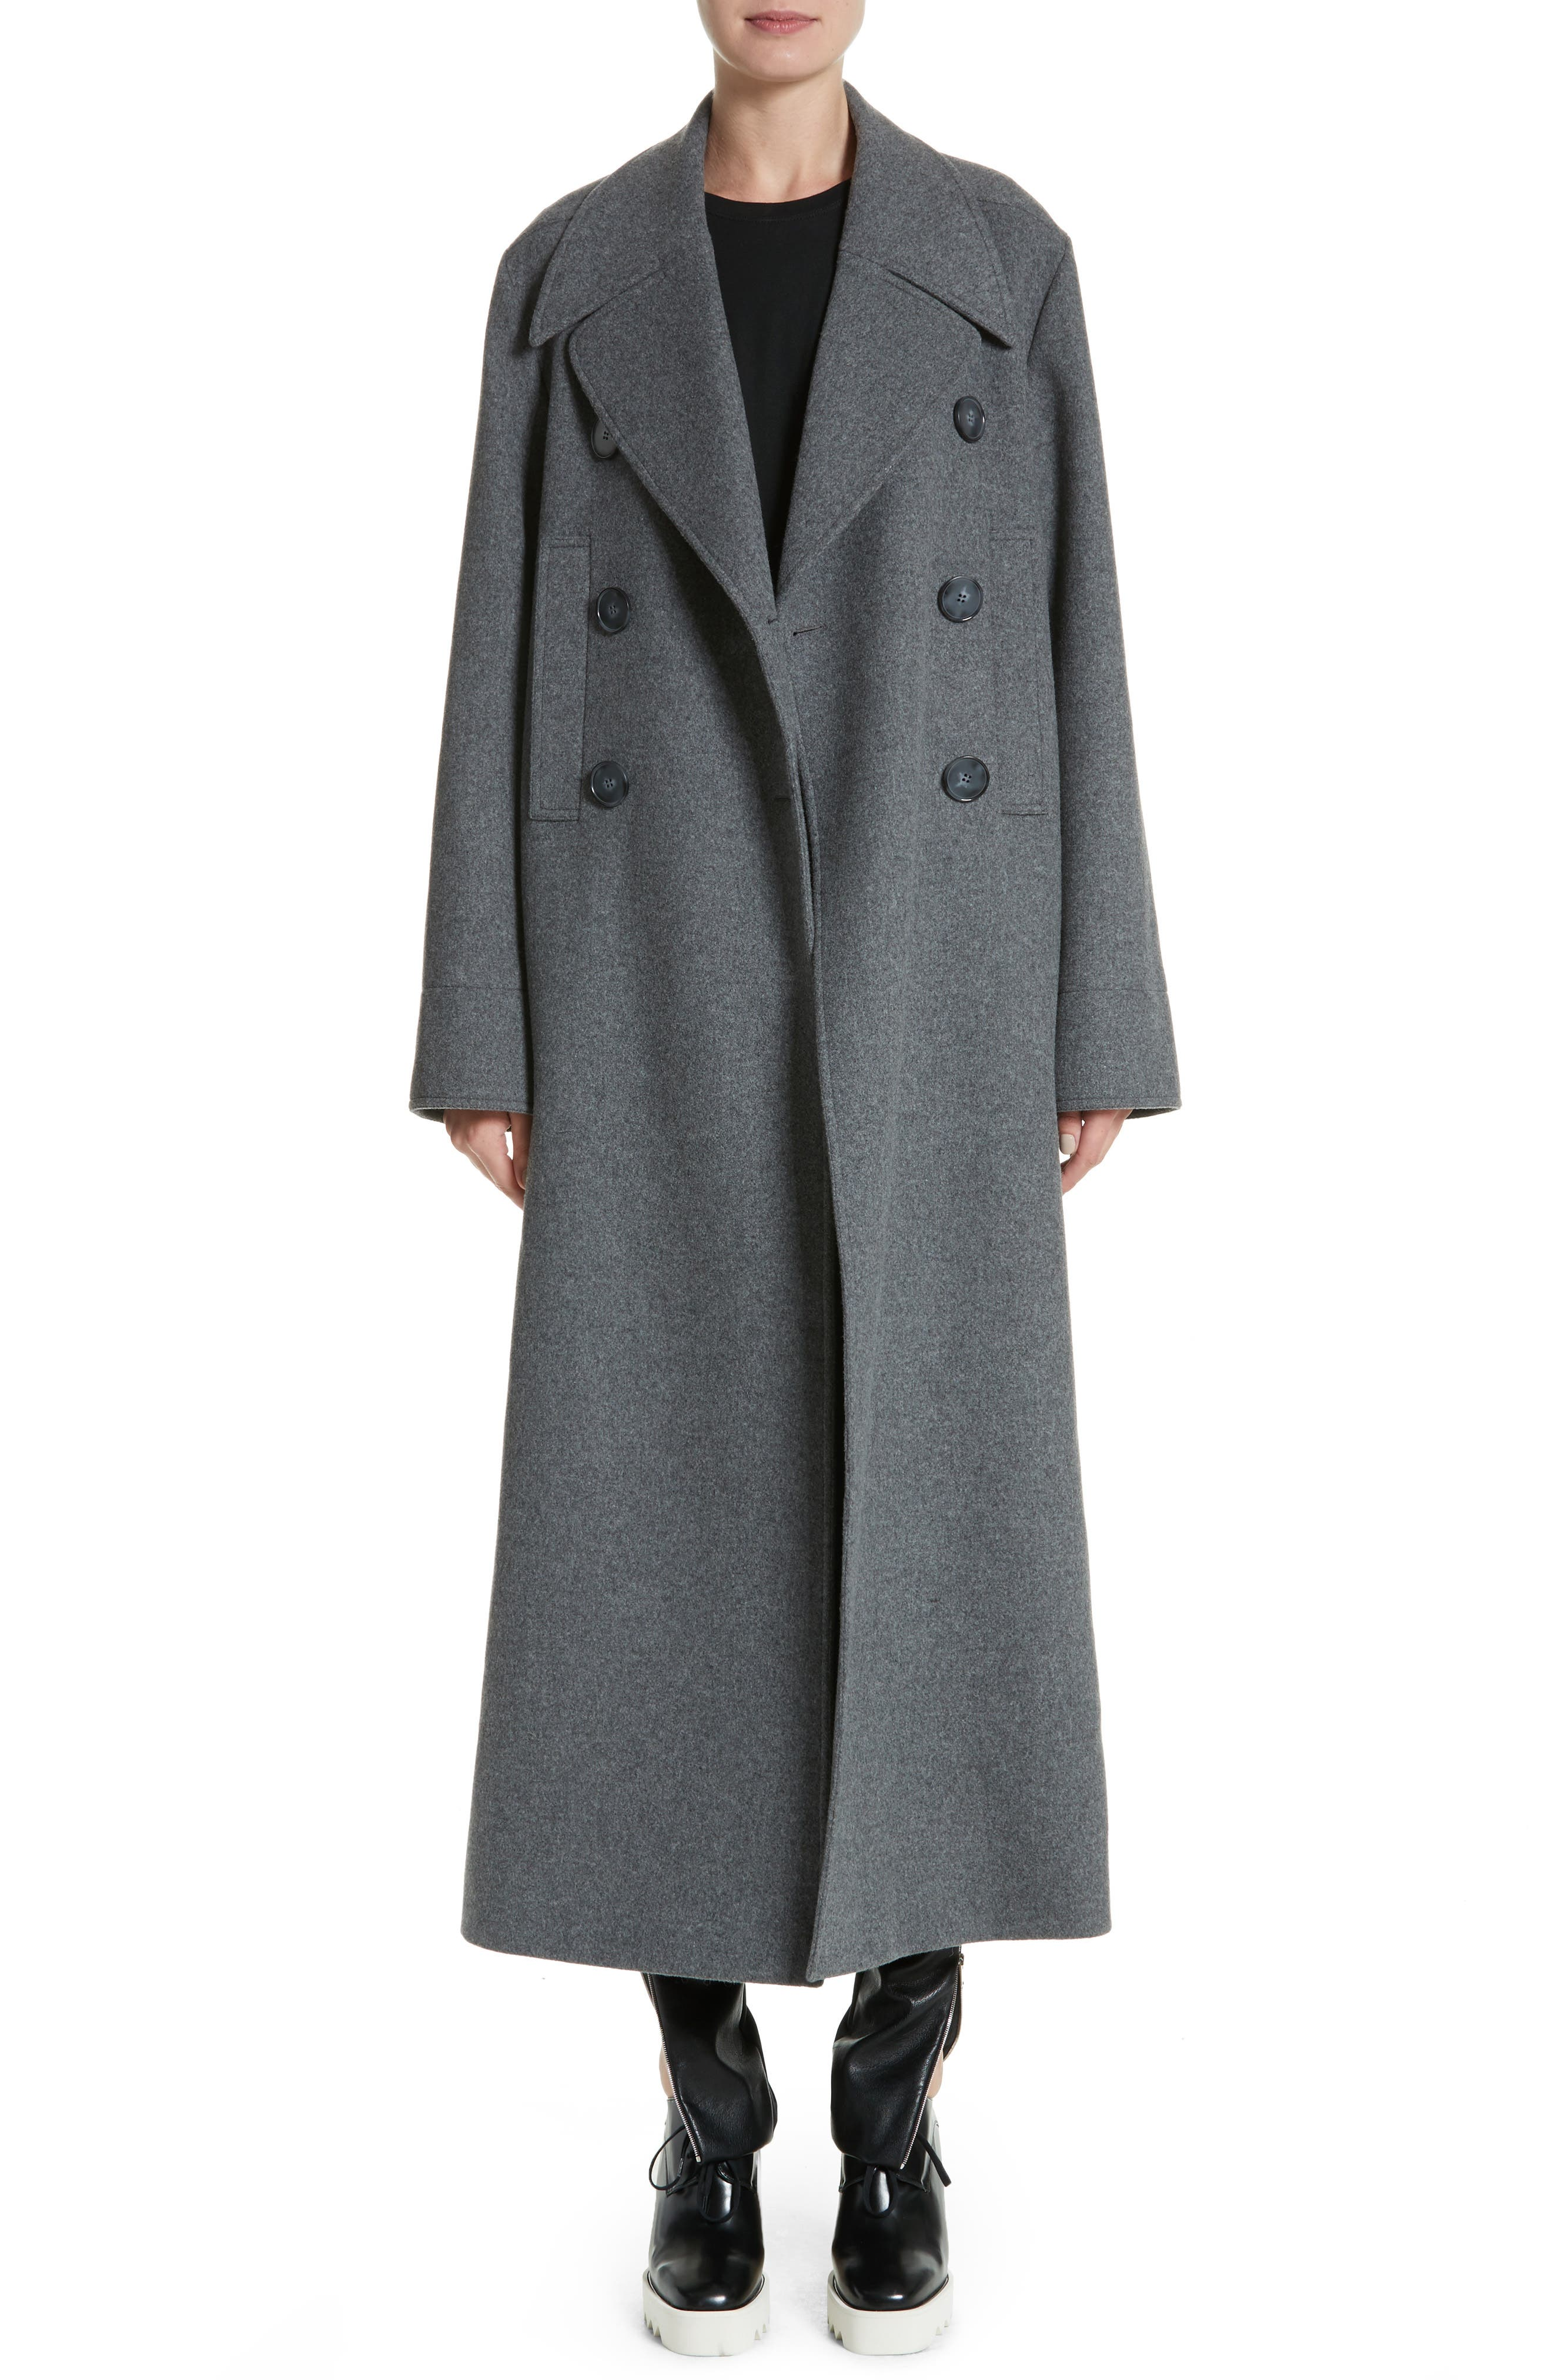 Edwina Long Double Breasted Wool Blend Coat,                             Main thumbnail 1, color,                             Graphite